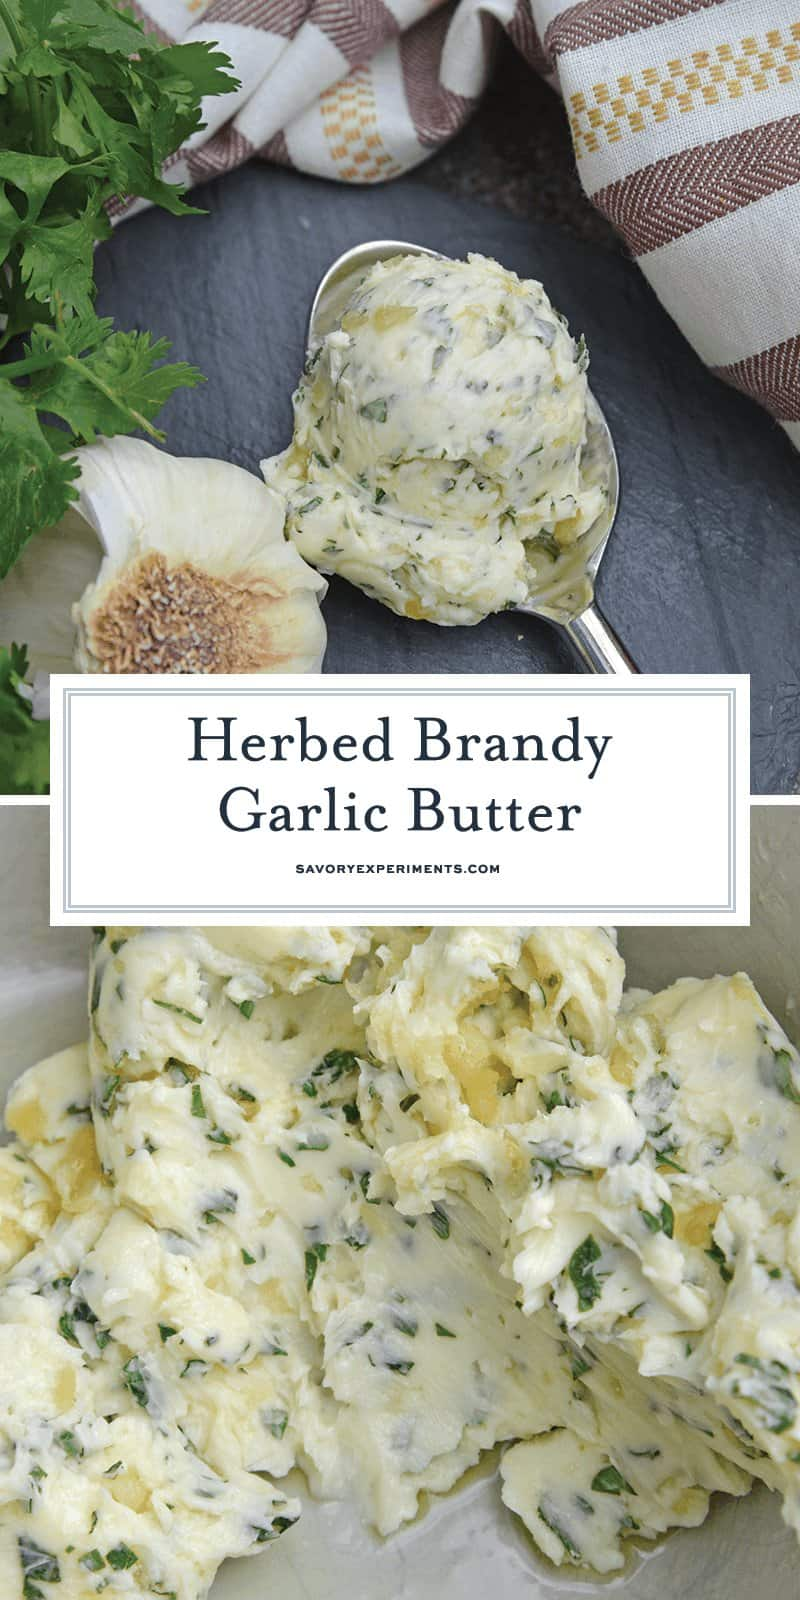 Brandy Garlic Butter is the best homemade garlic butter ever! Easy to make and SO yummy on garlic butter steak! #garlicbutter #howtomakegarlicbutter www.savoryexperiments.com